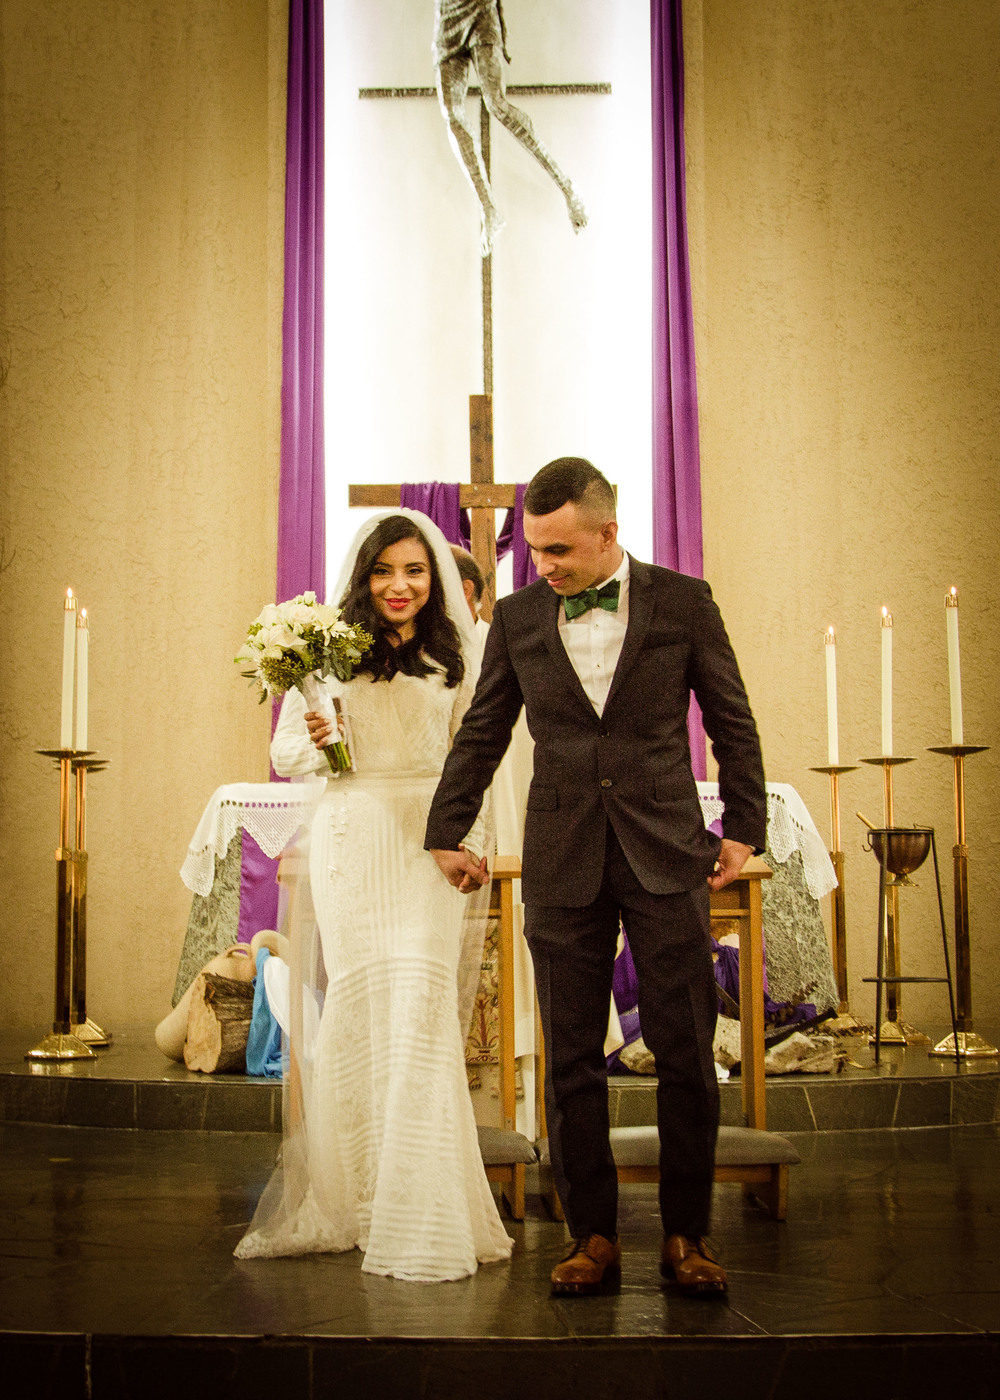 vane & johnny wedding-81.jpg